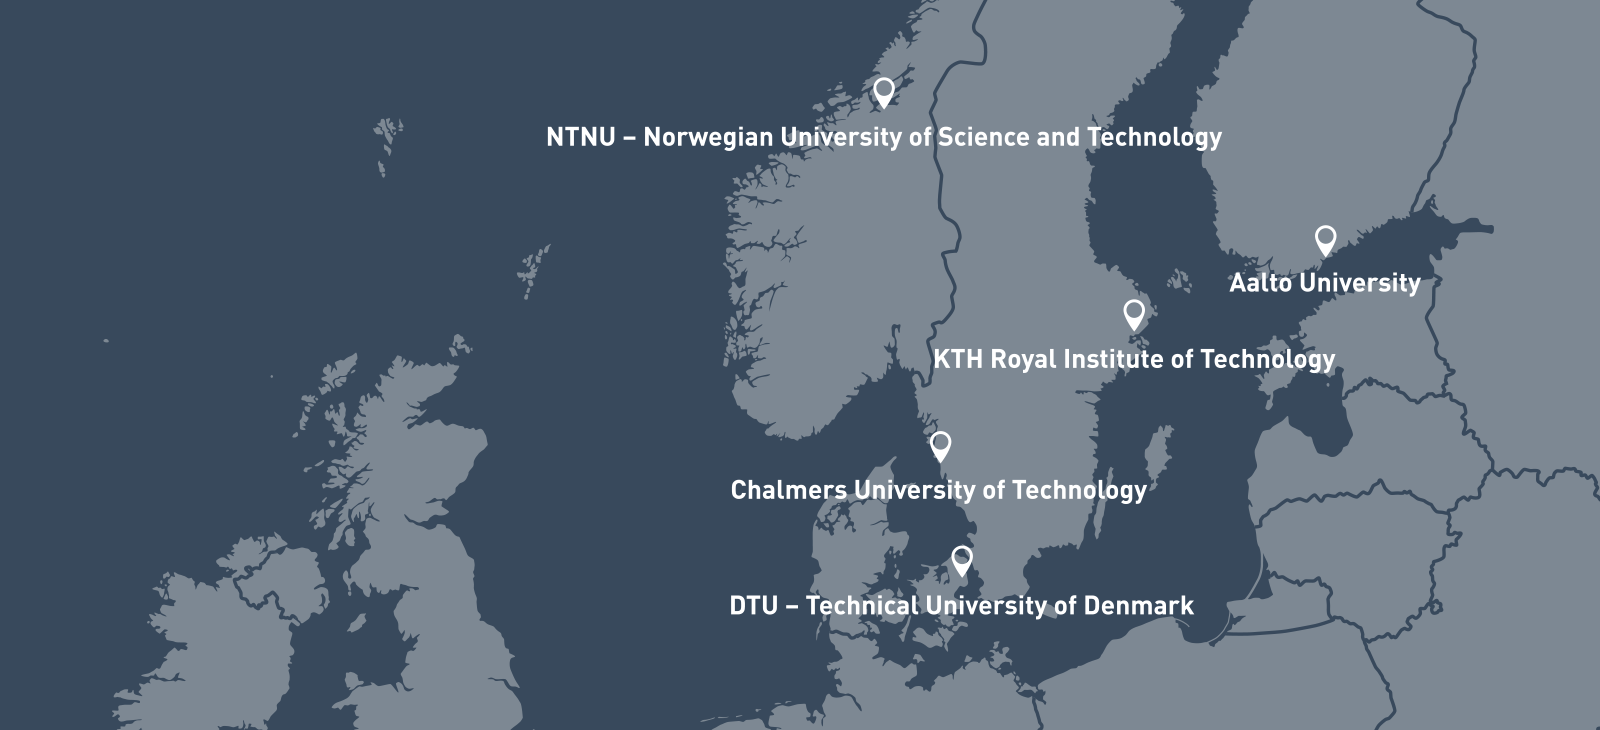 Nordic Five tech - Alliance of the leading Nordic Technical Universities